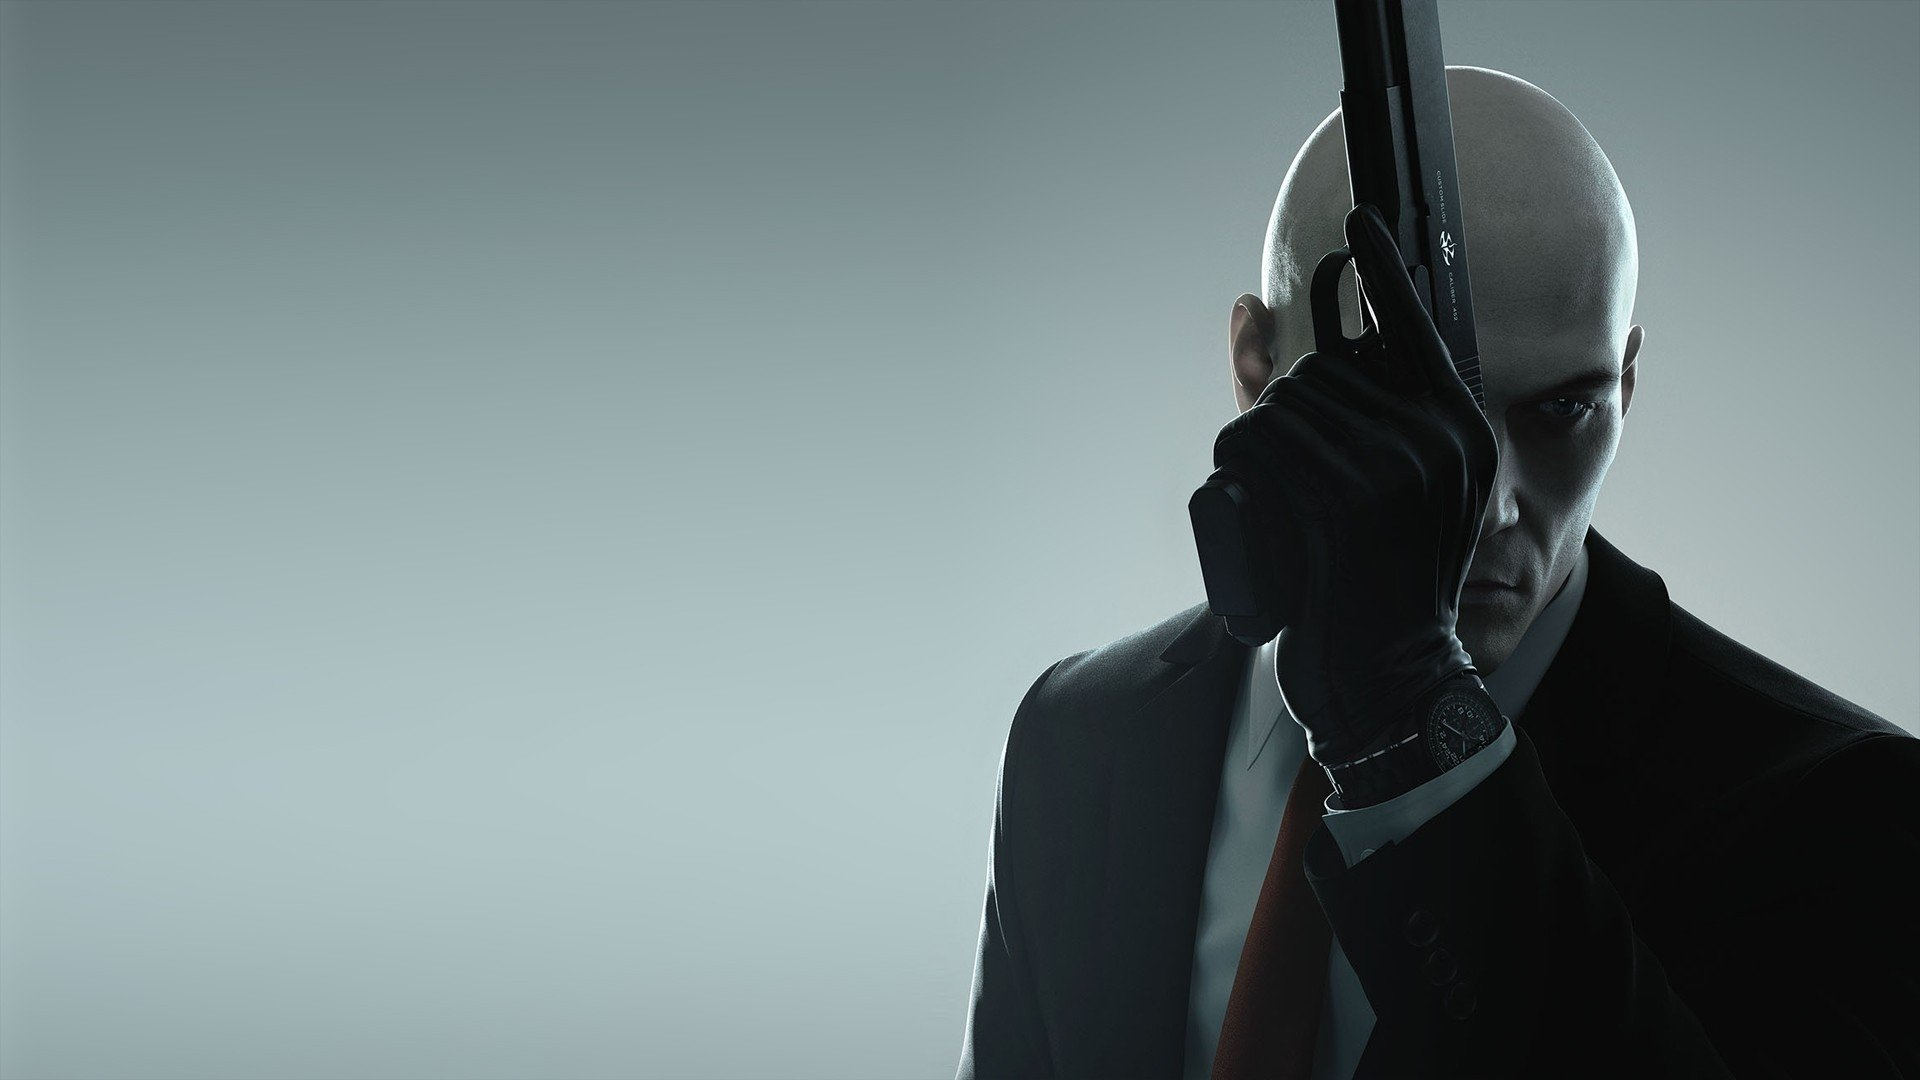 Hitman 2016 hd wallpaper background image 1920x1080 id 676620 wallpaper abyss - Agent 47 wallpaper ...